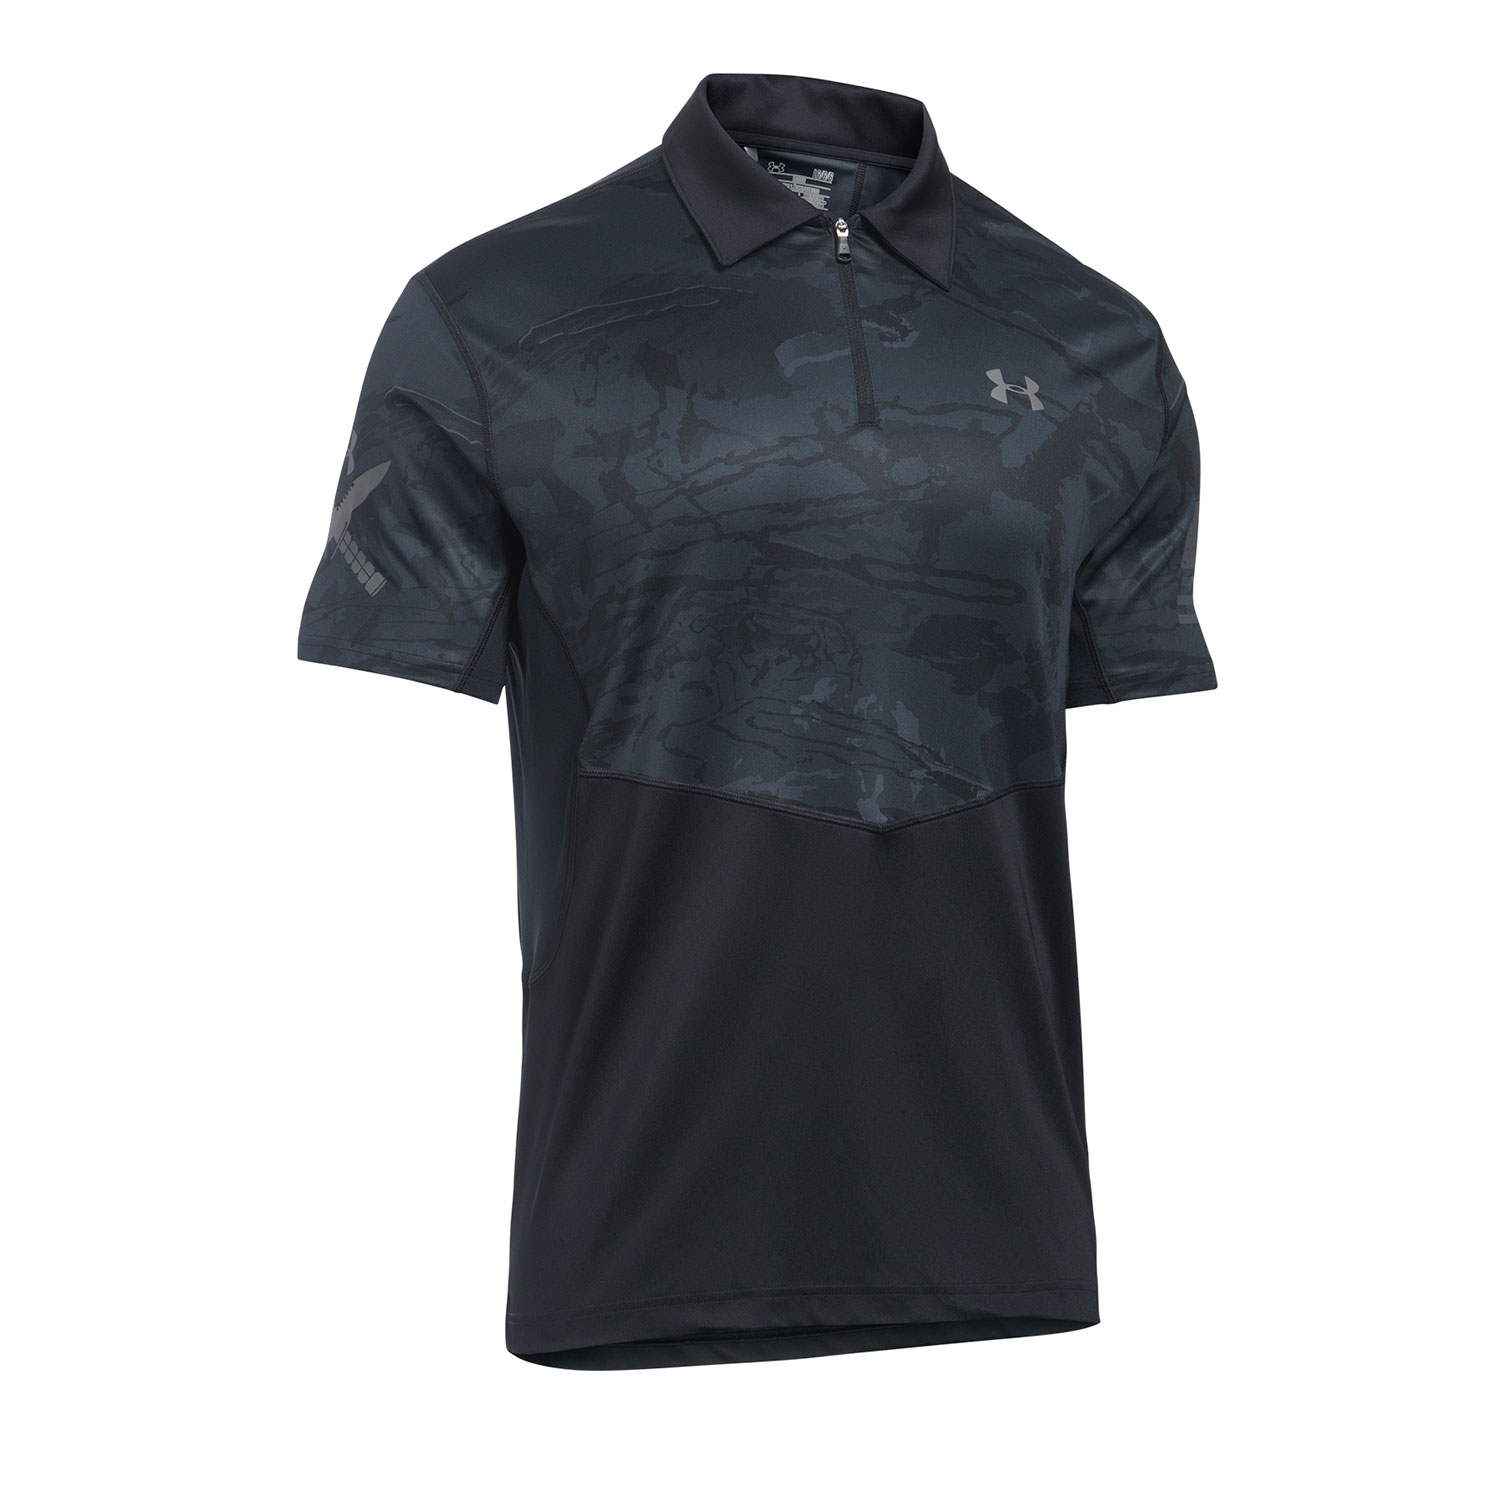 Under Armour Sub Range Jersey Polo